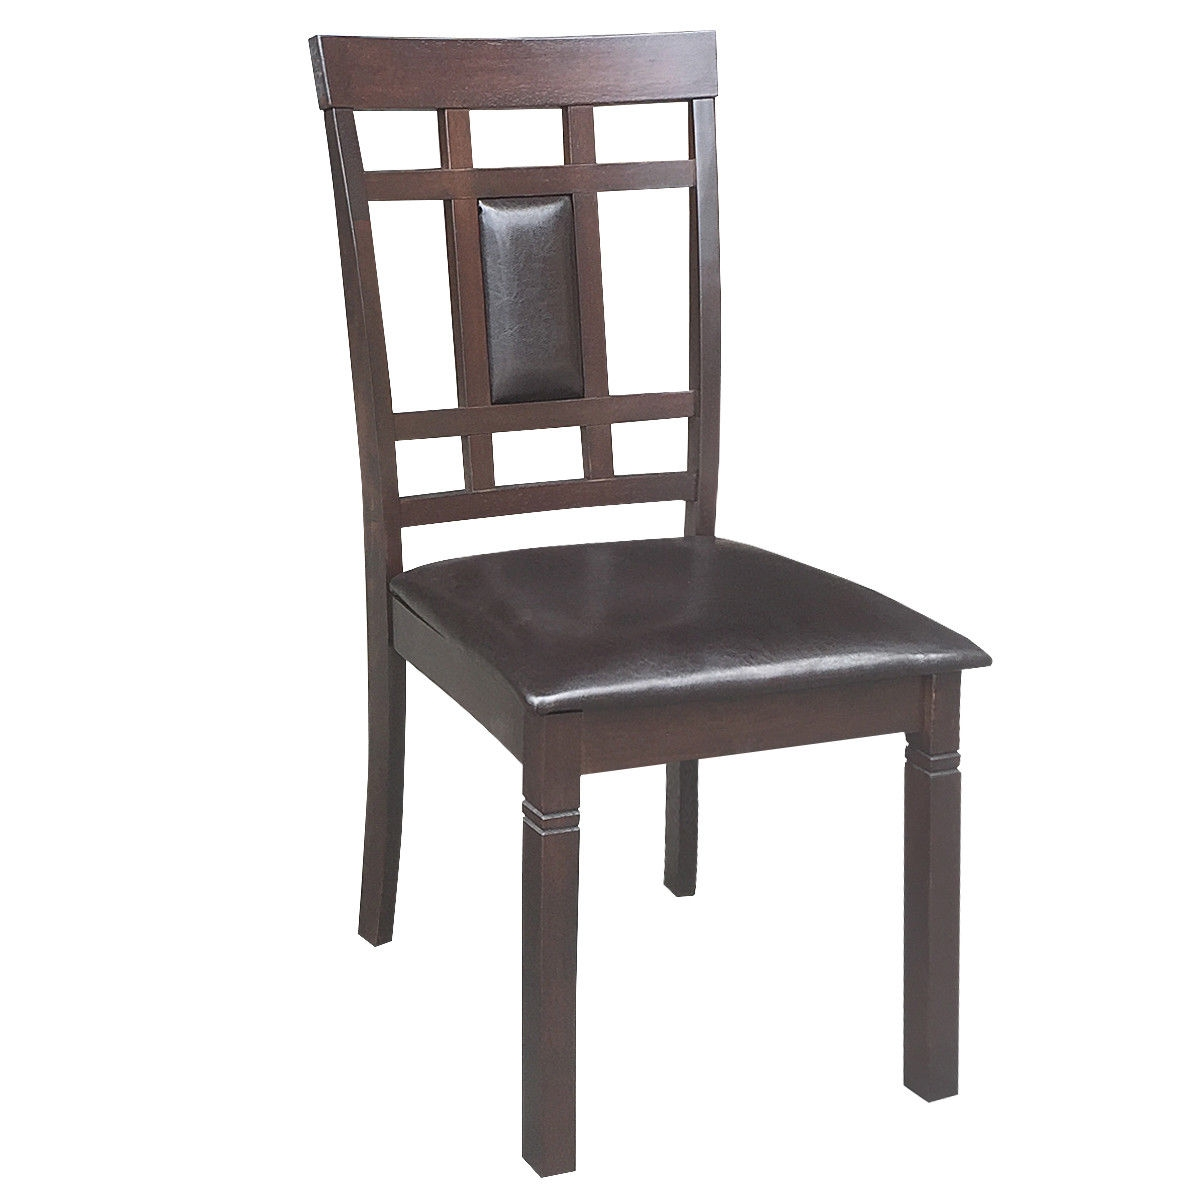 Set of 2 PU Leather Upholstered Dining Chairs High Back Armless Furniture-Coffee